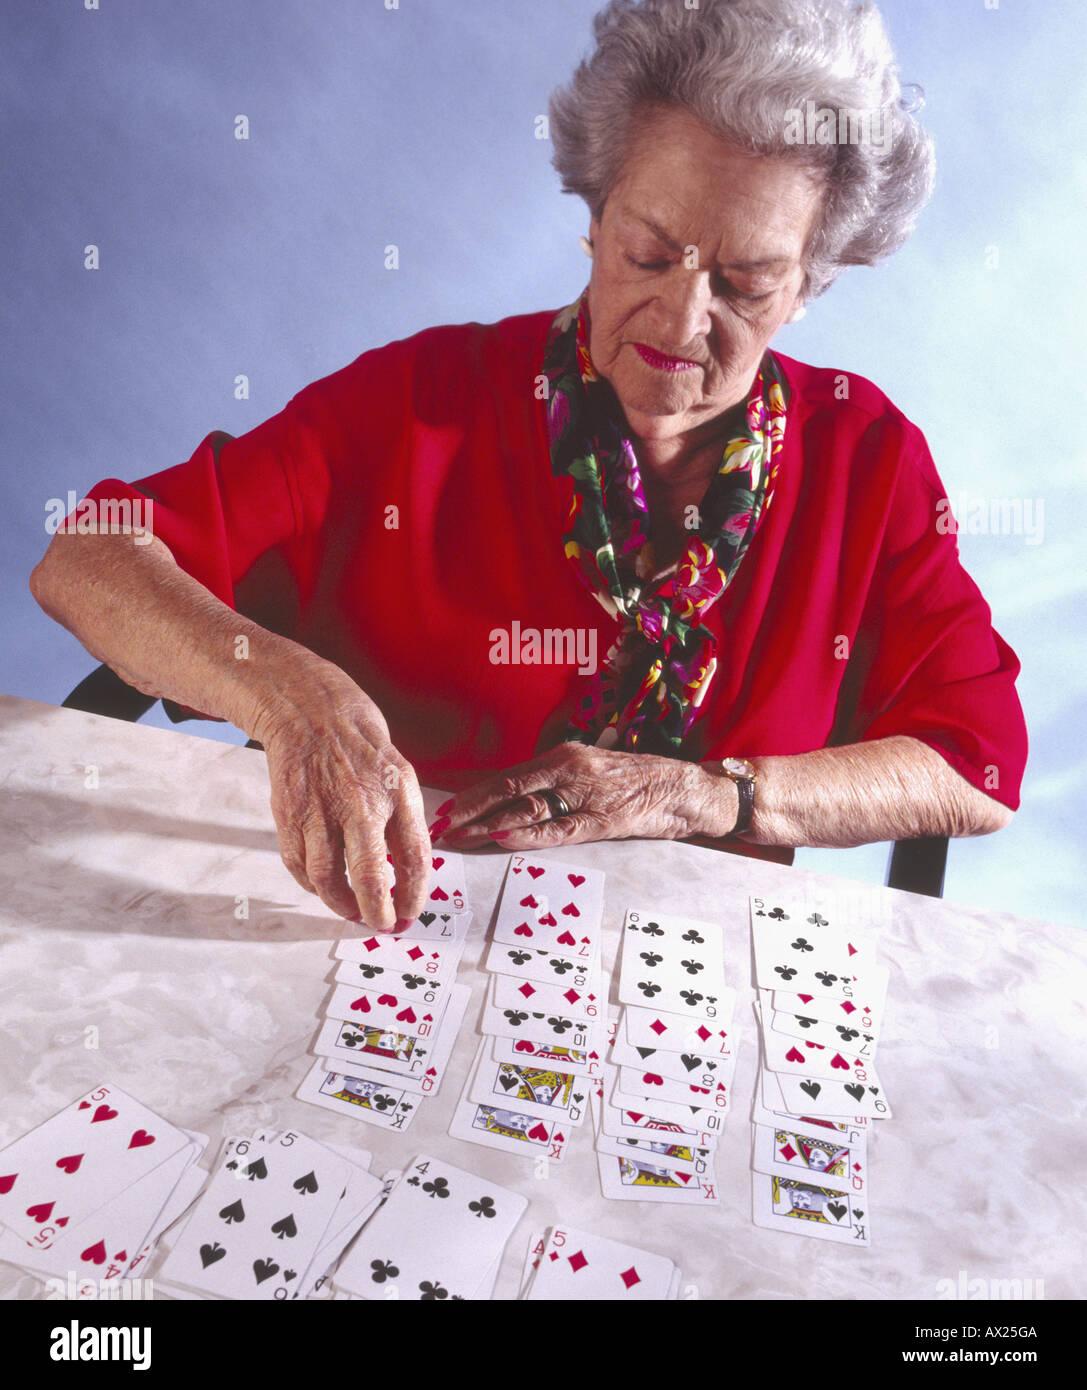 elderly woman playing solitaire - Stock Image